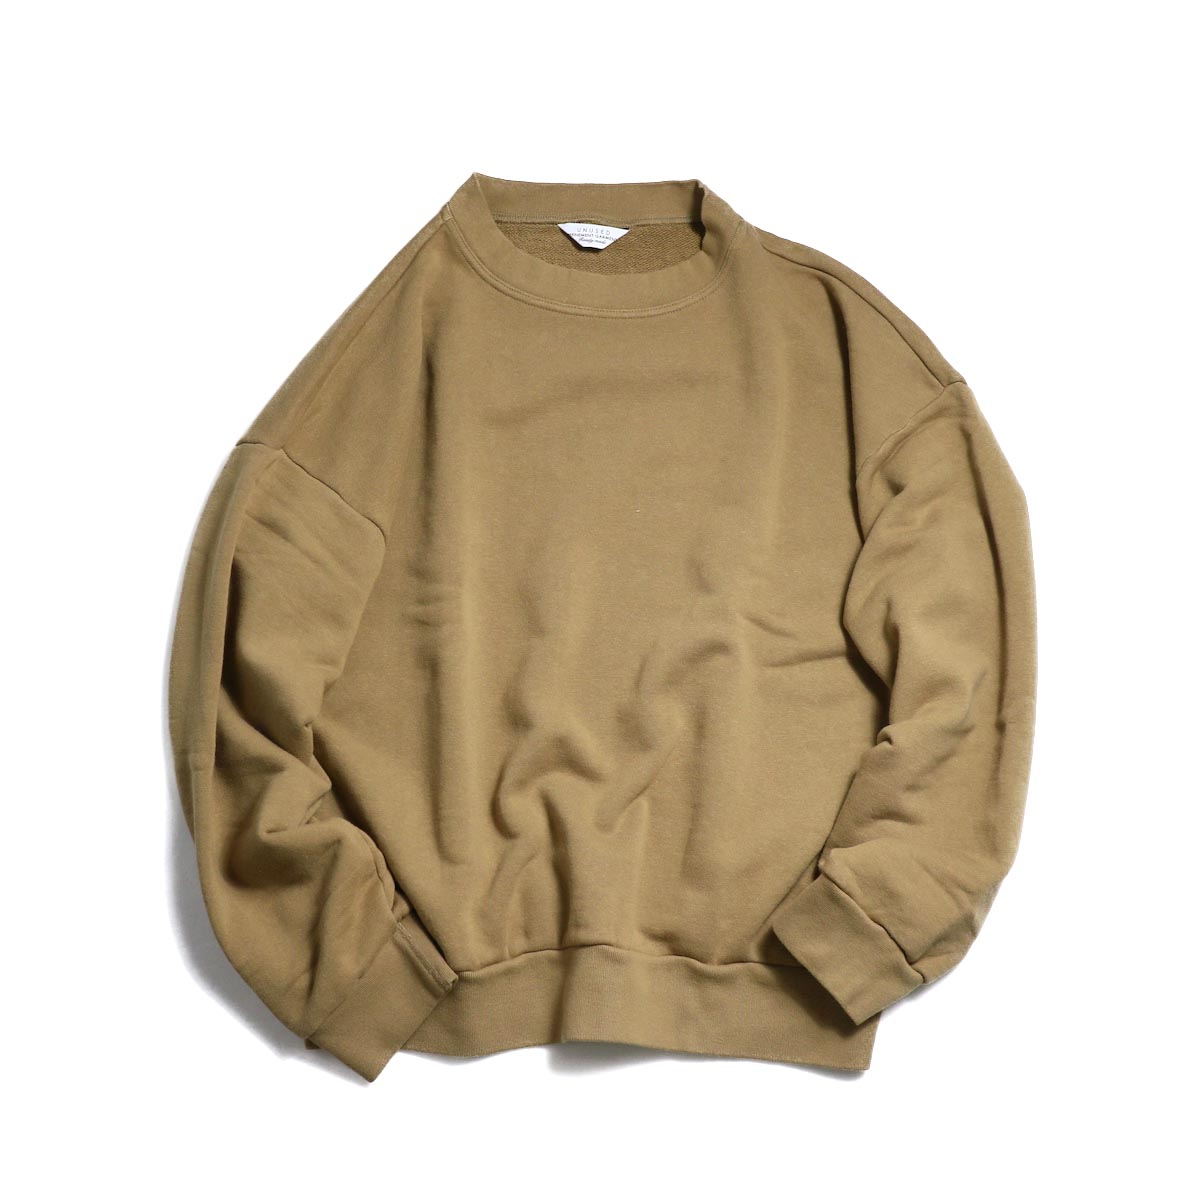 UNUSED / US1529 Crew Neck Sweat Shirt -CAMEL